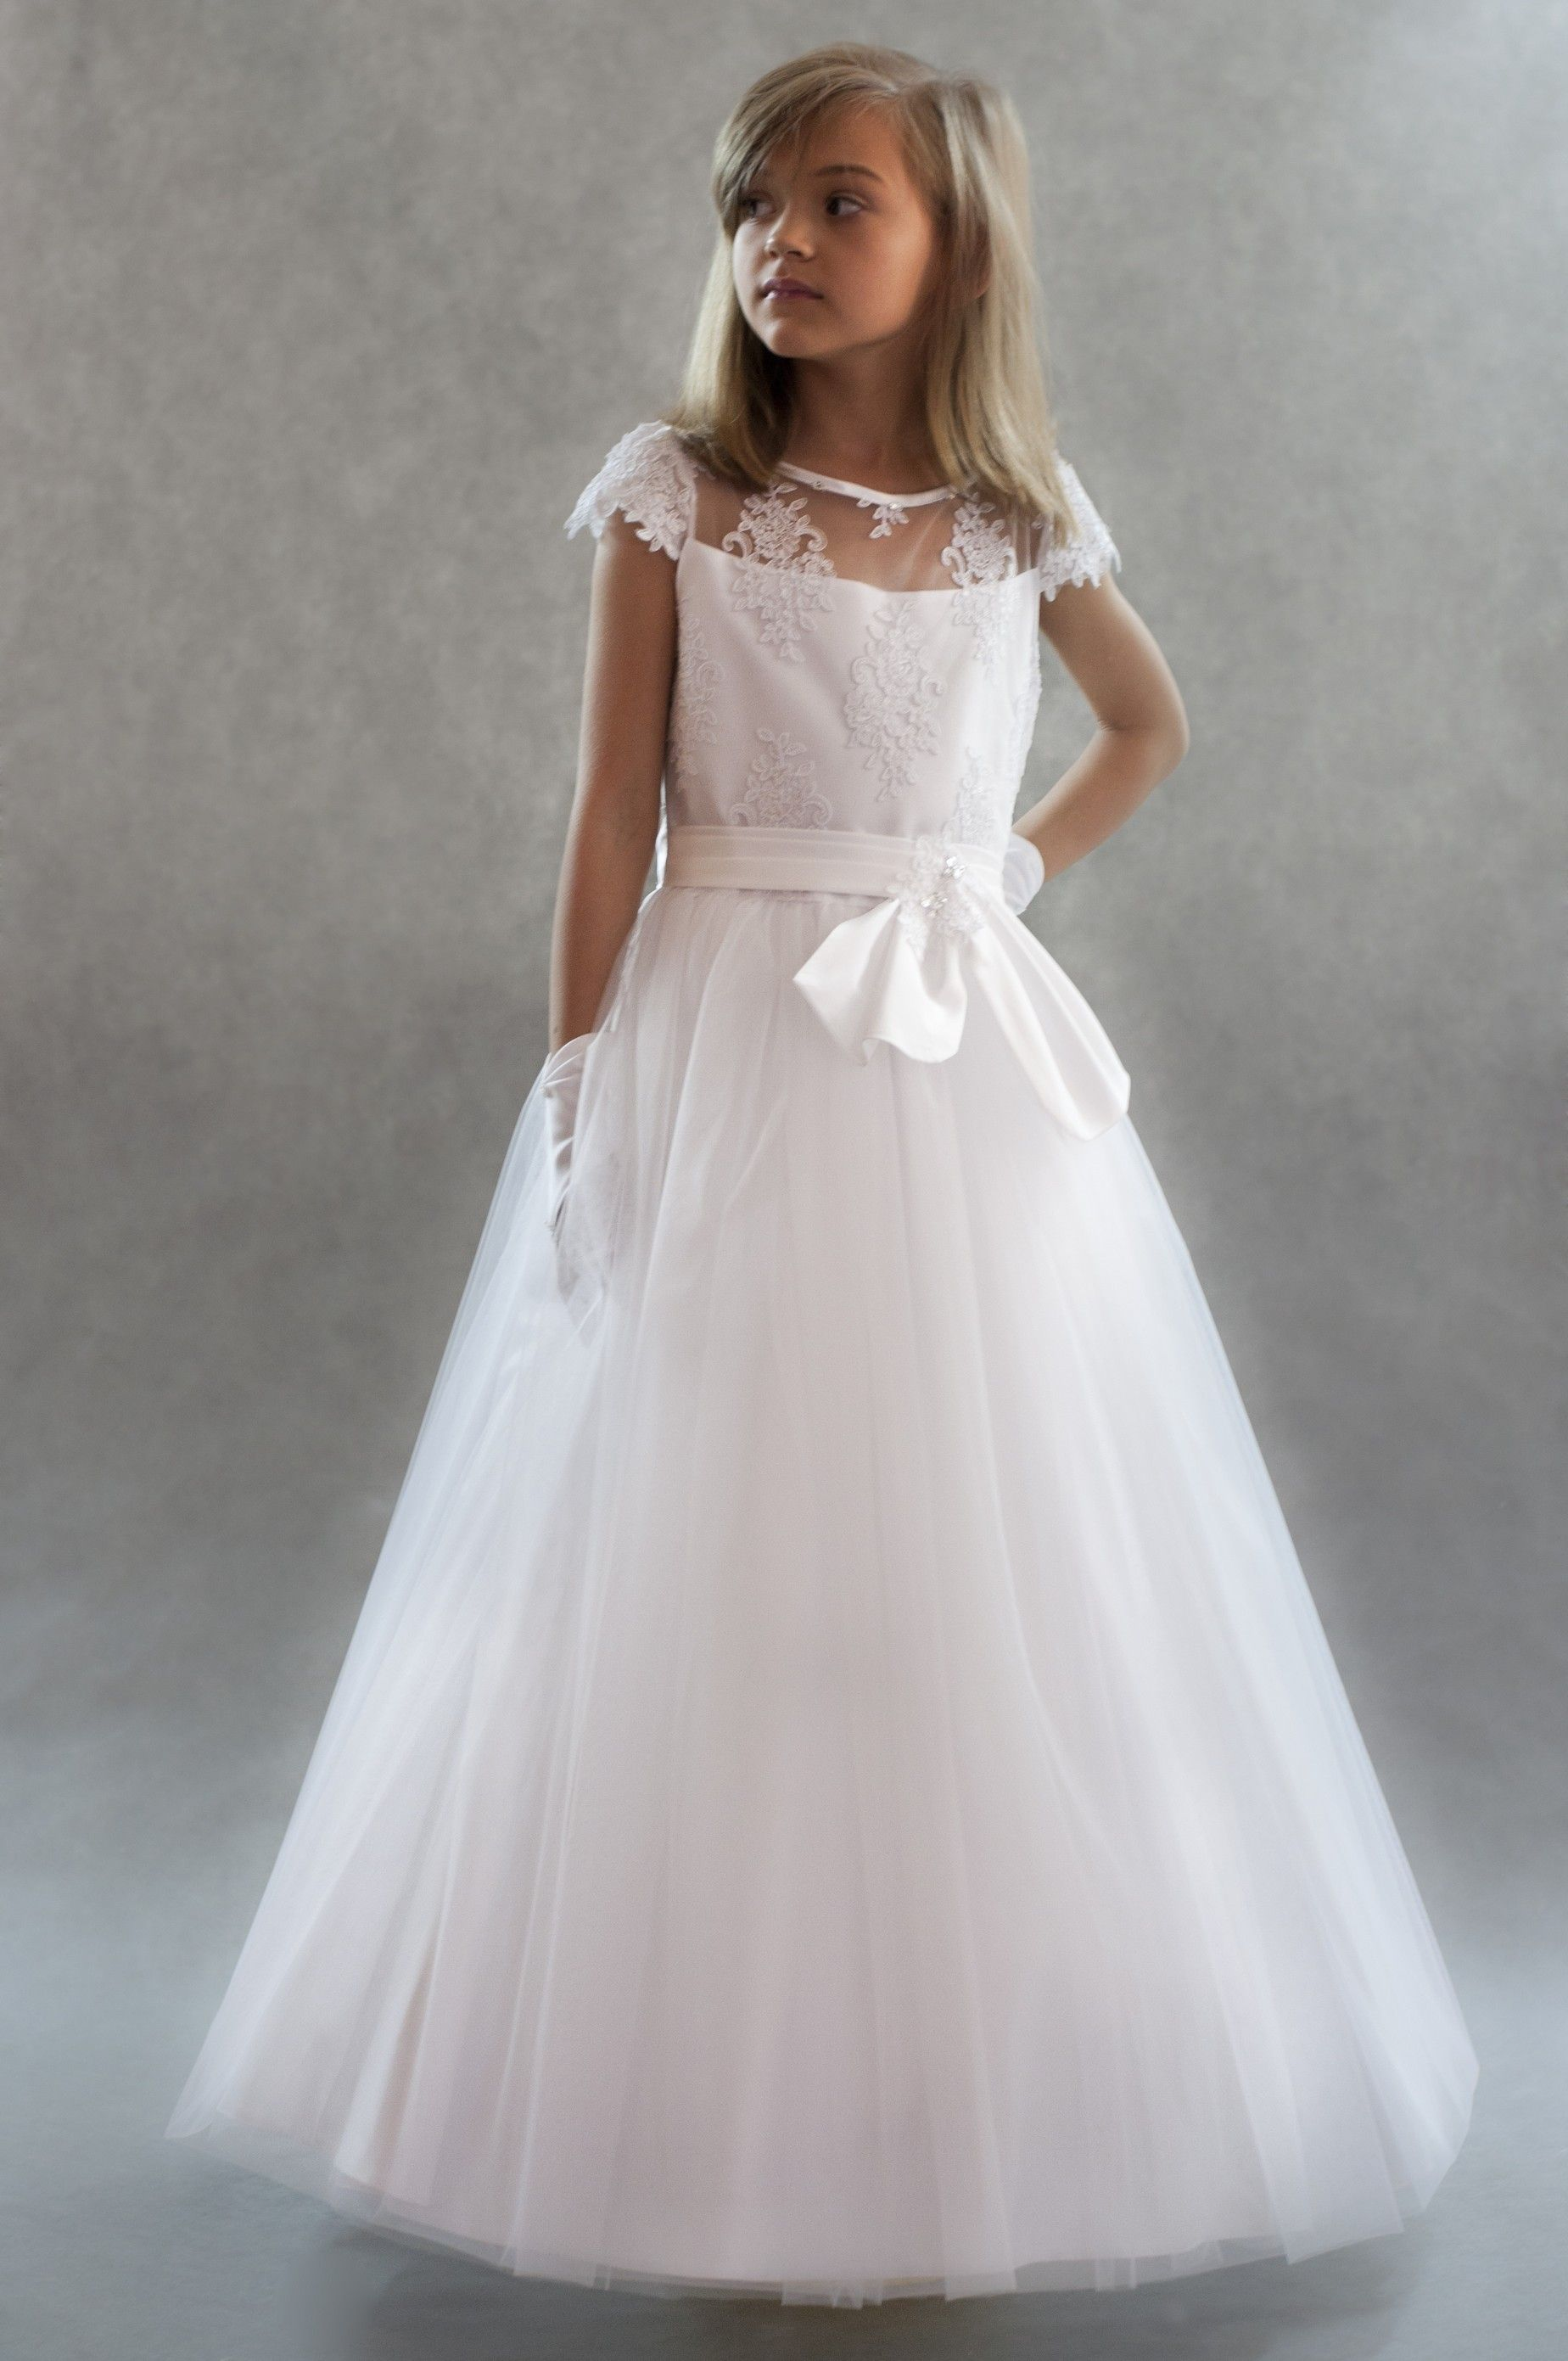 Handmade Lace Communion Dress Communion Dresses